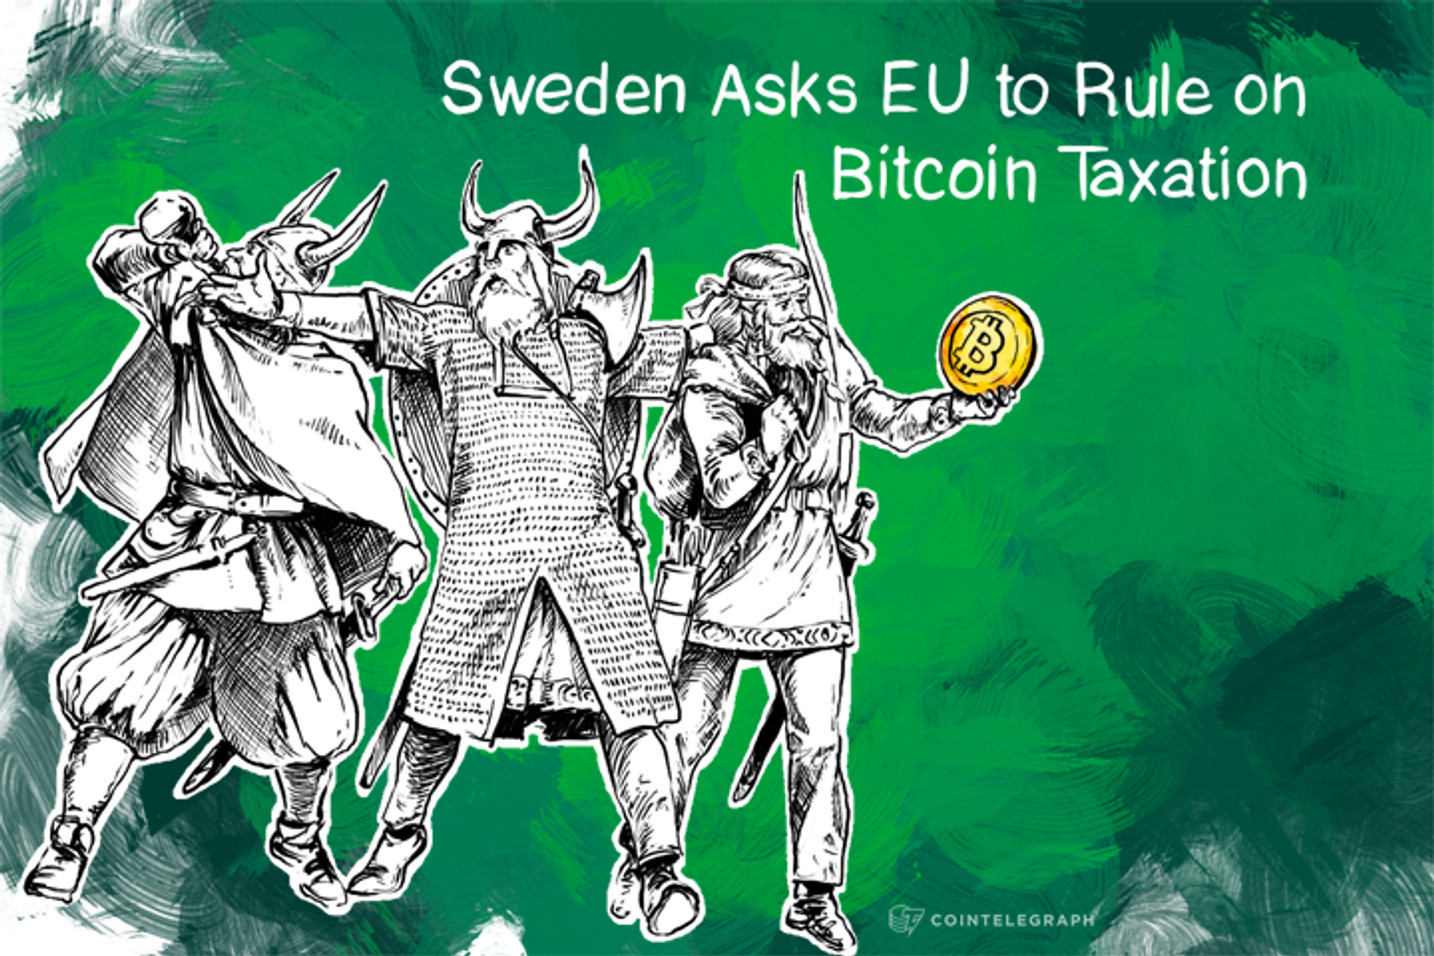 Sweden Asks EU to Rule on Bitcoin Taxation